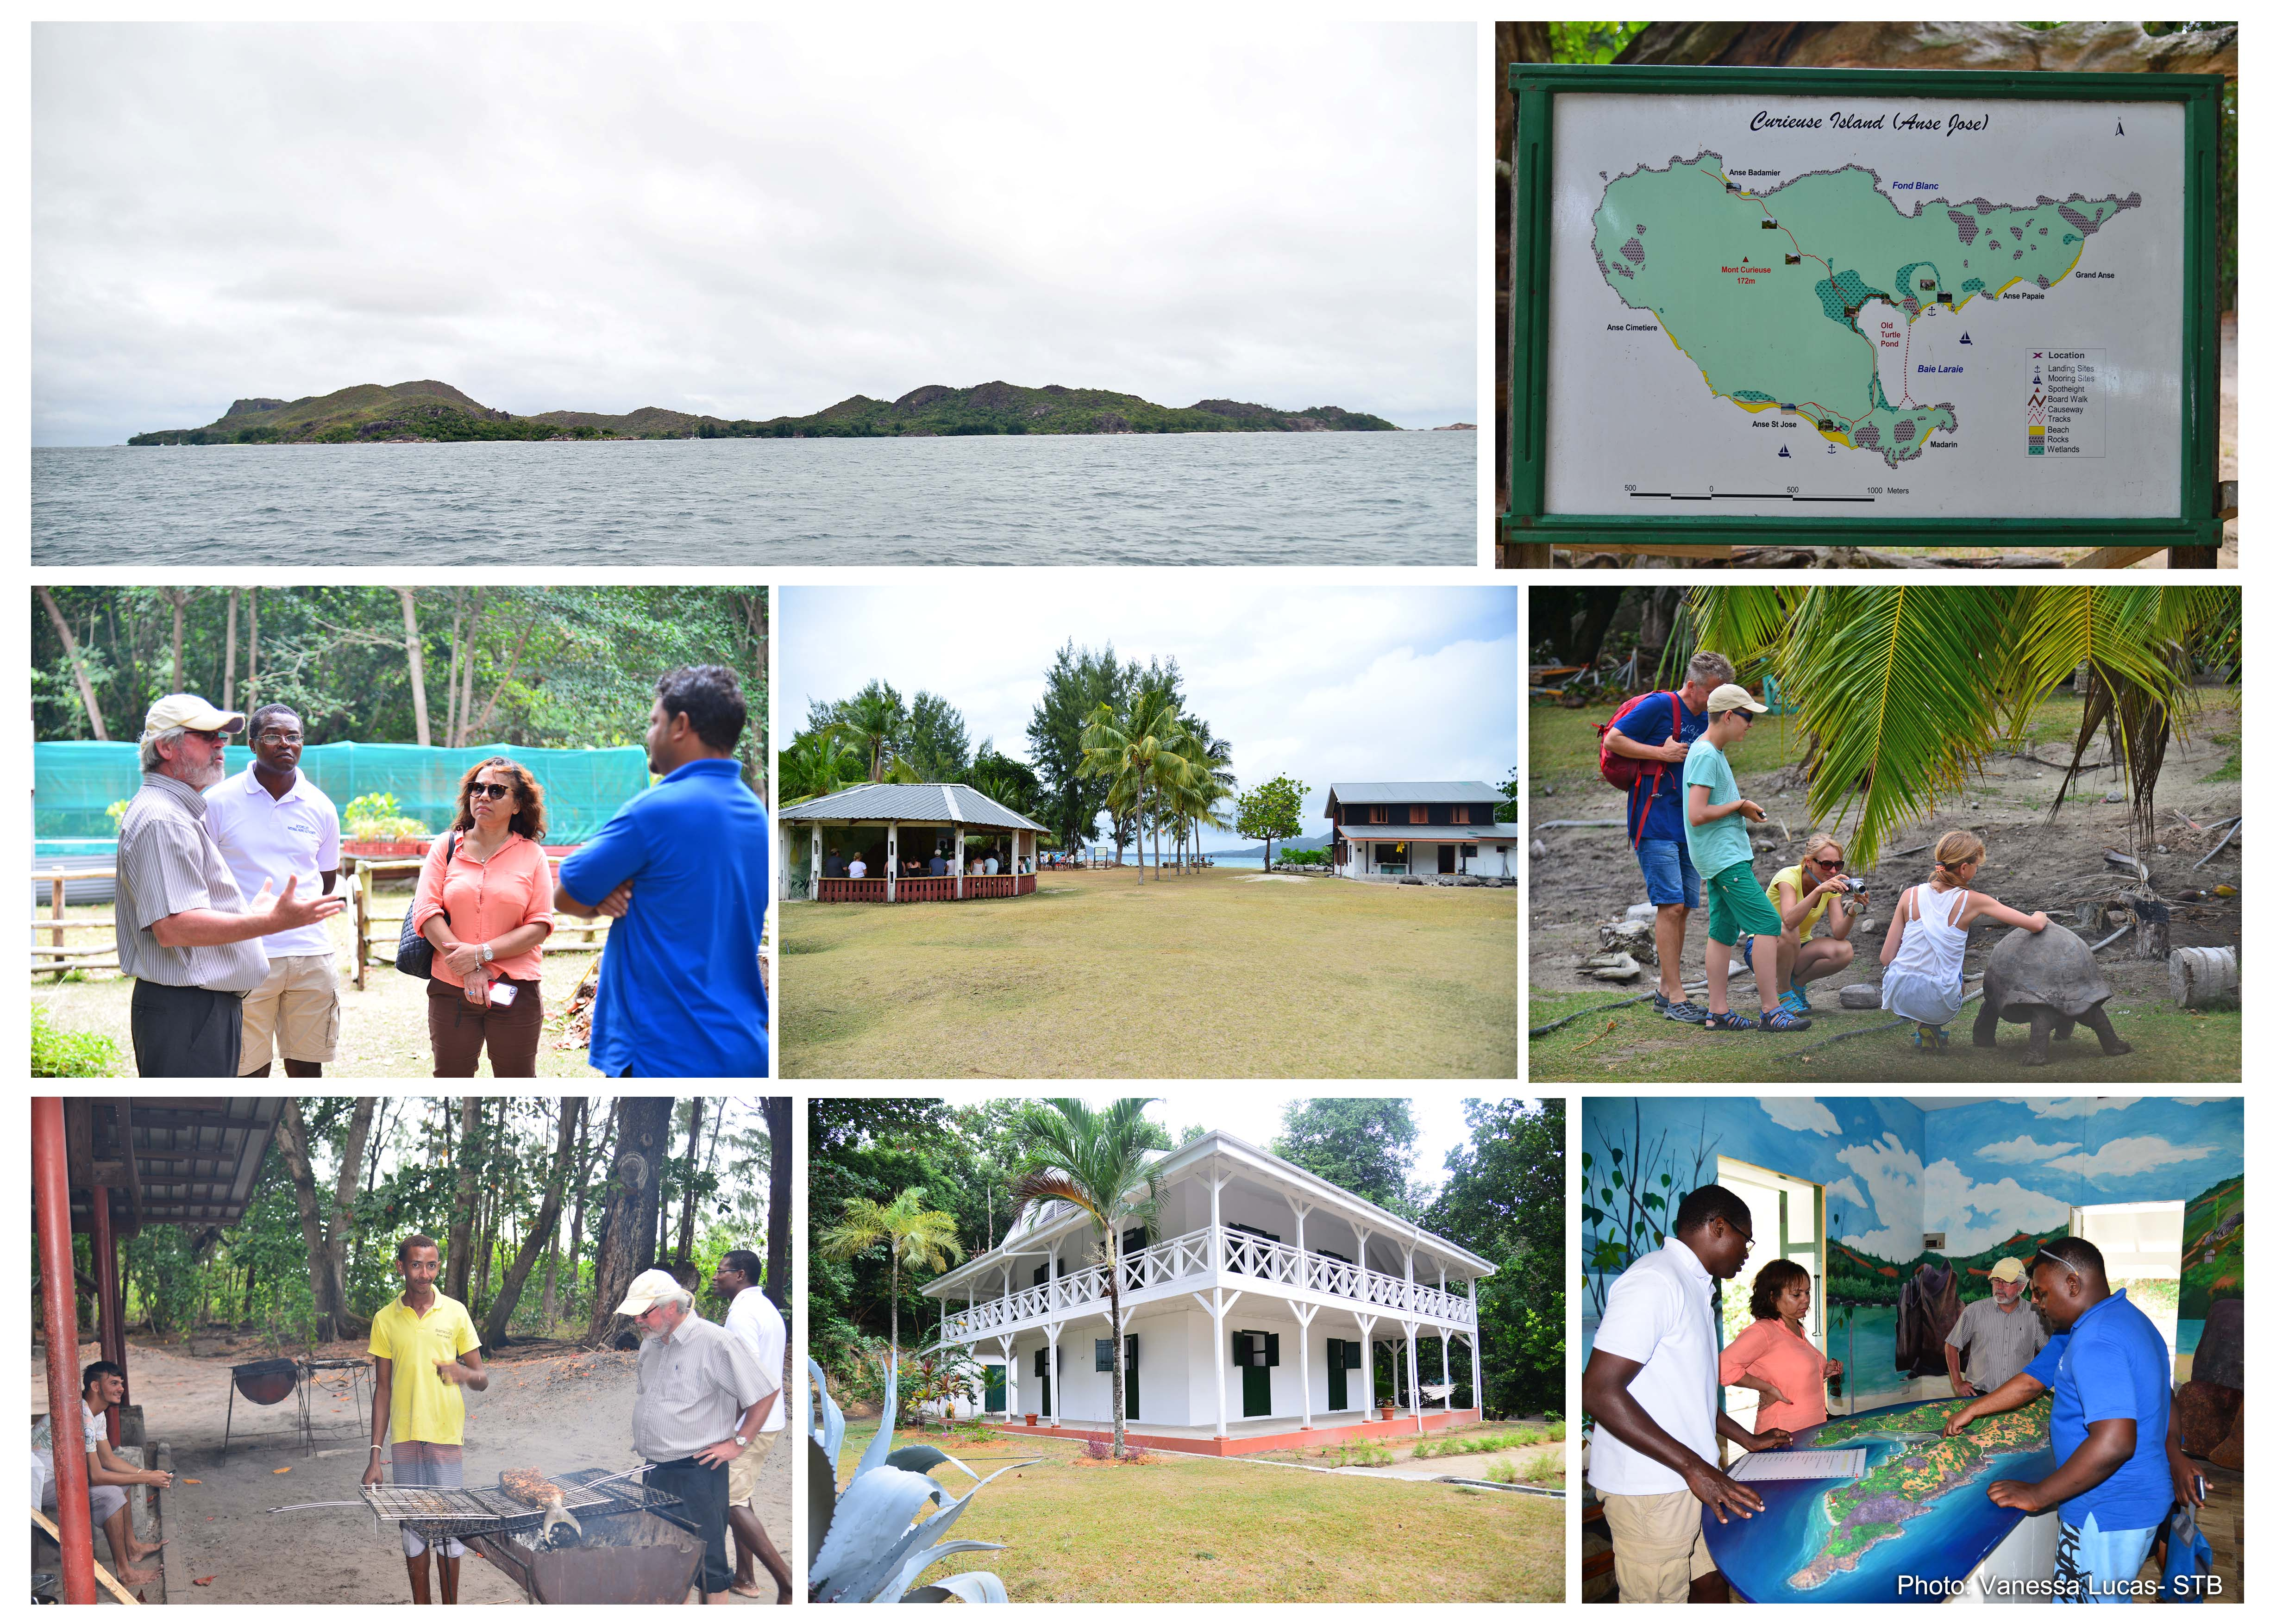 Tourism Minister inspects ongoing projects by the SNPA to improvevisitors' experience on Curieuse